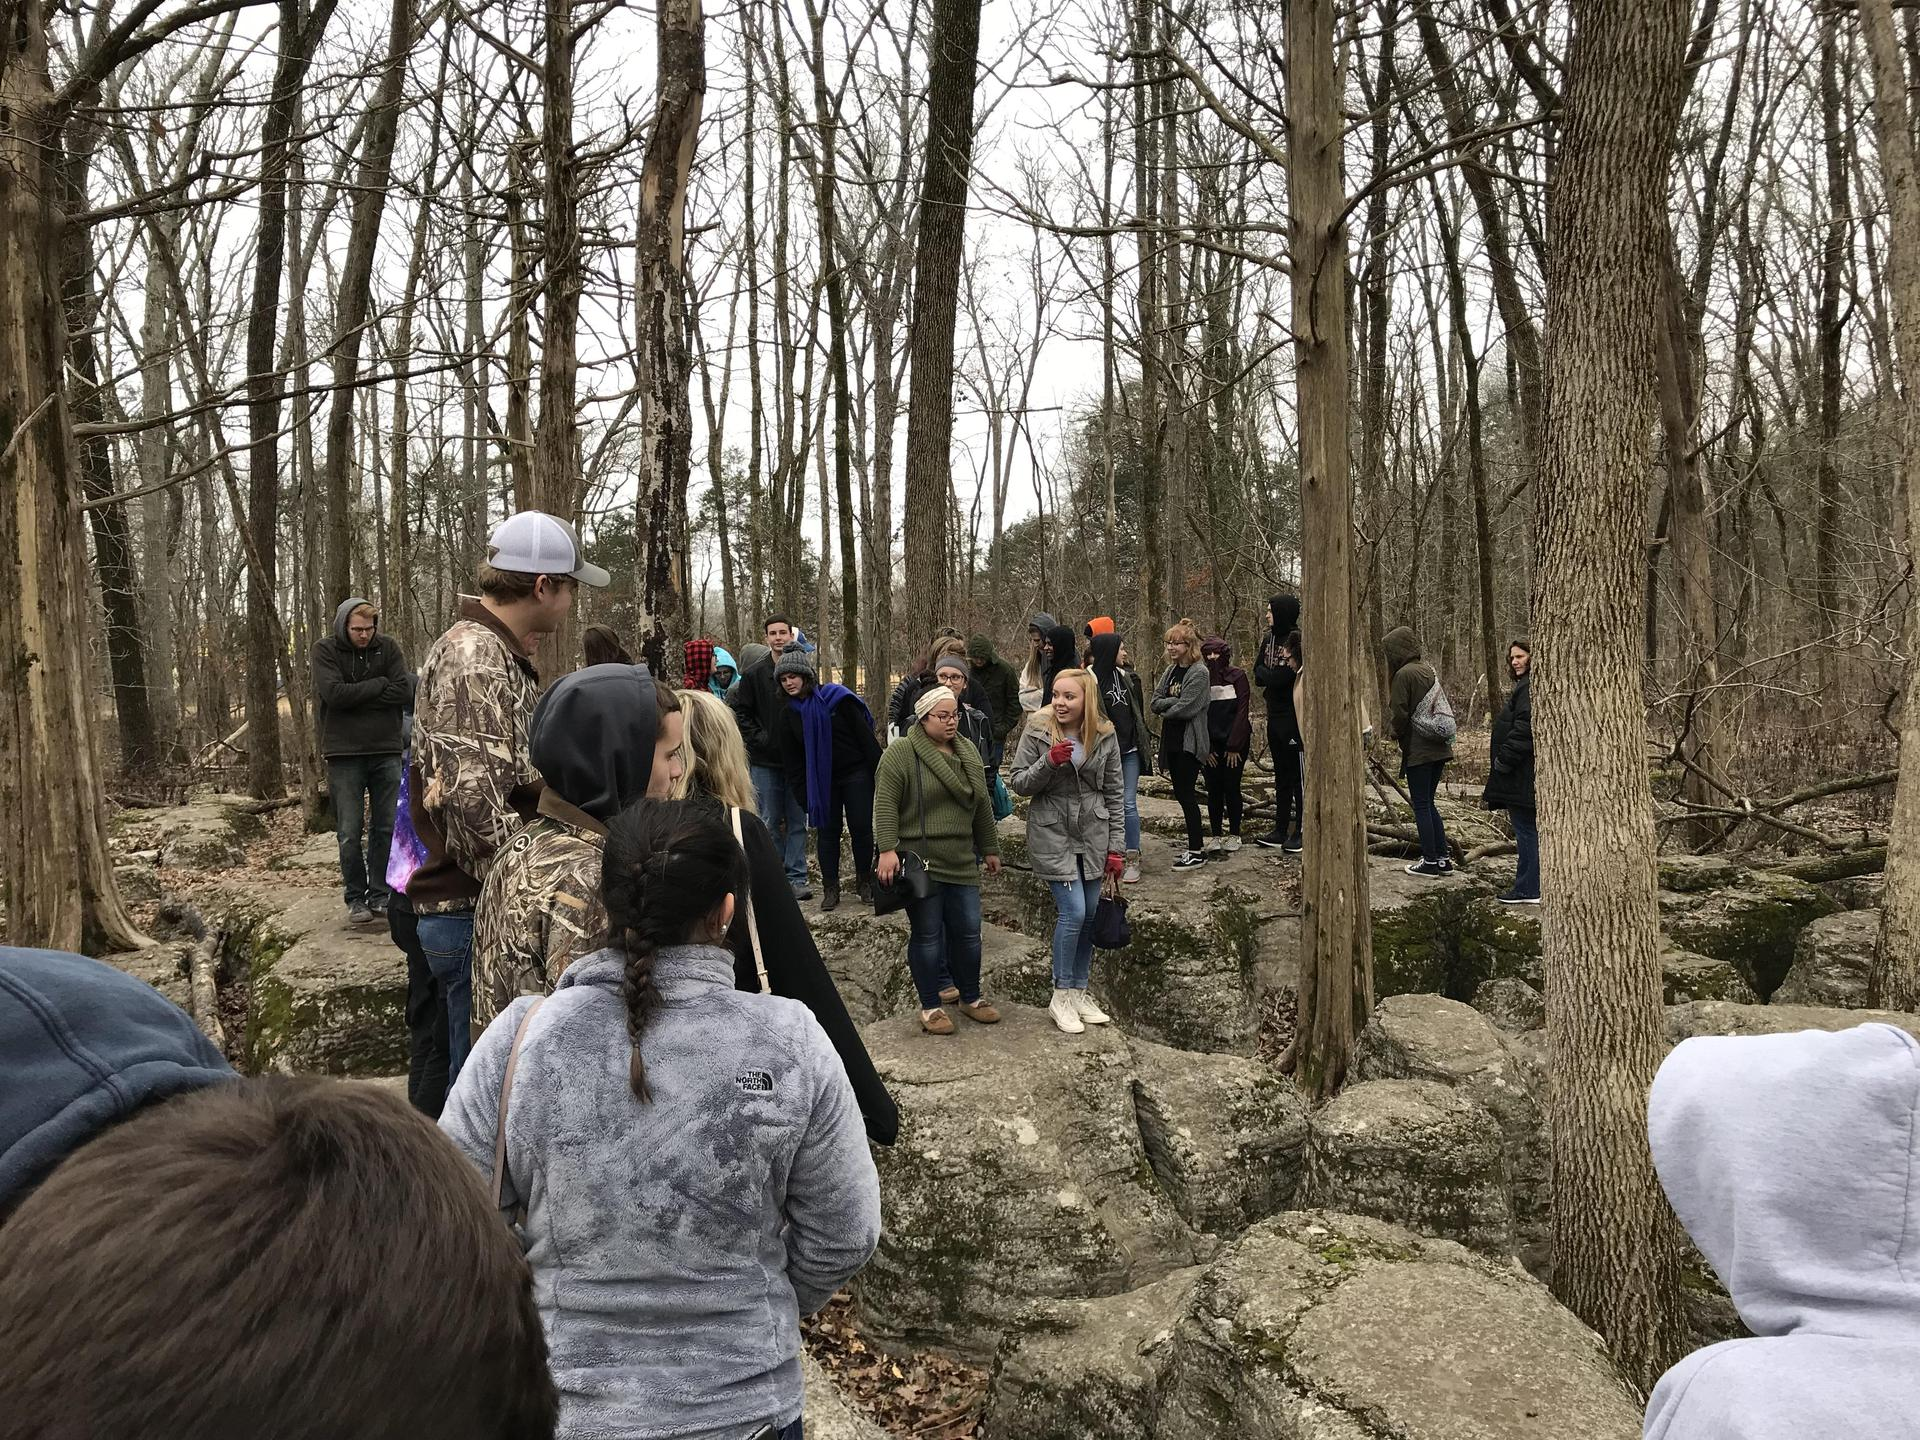 SCHS Historical Society visited Stones River National Battlefield - Extremely Cold Day, Feb 2018